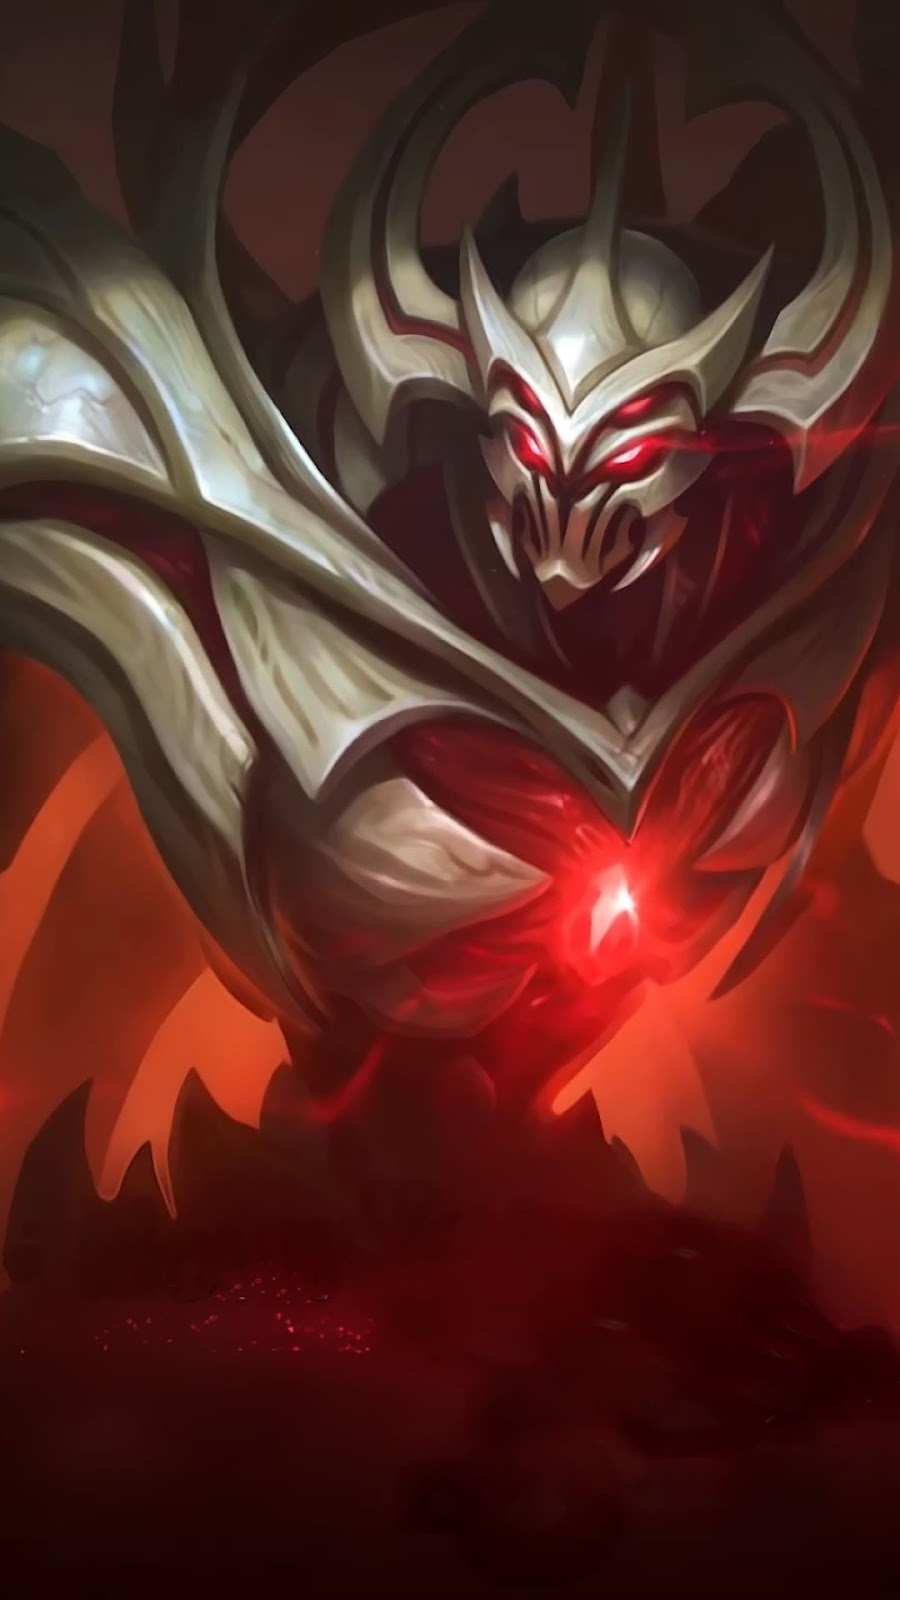 Wallpaper Zhask Bone Flamen Skin Mobile Legends HD for Android and iOS